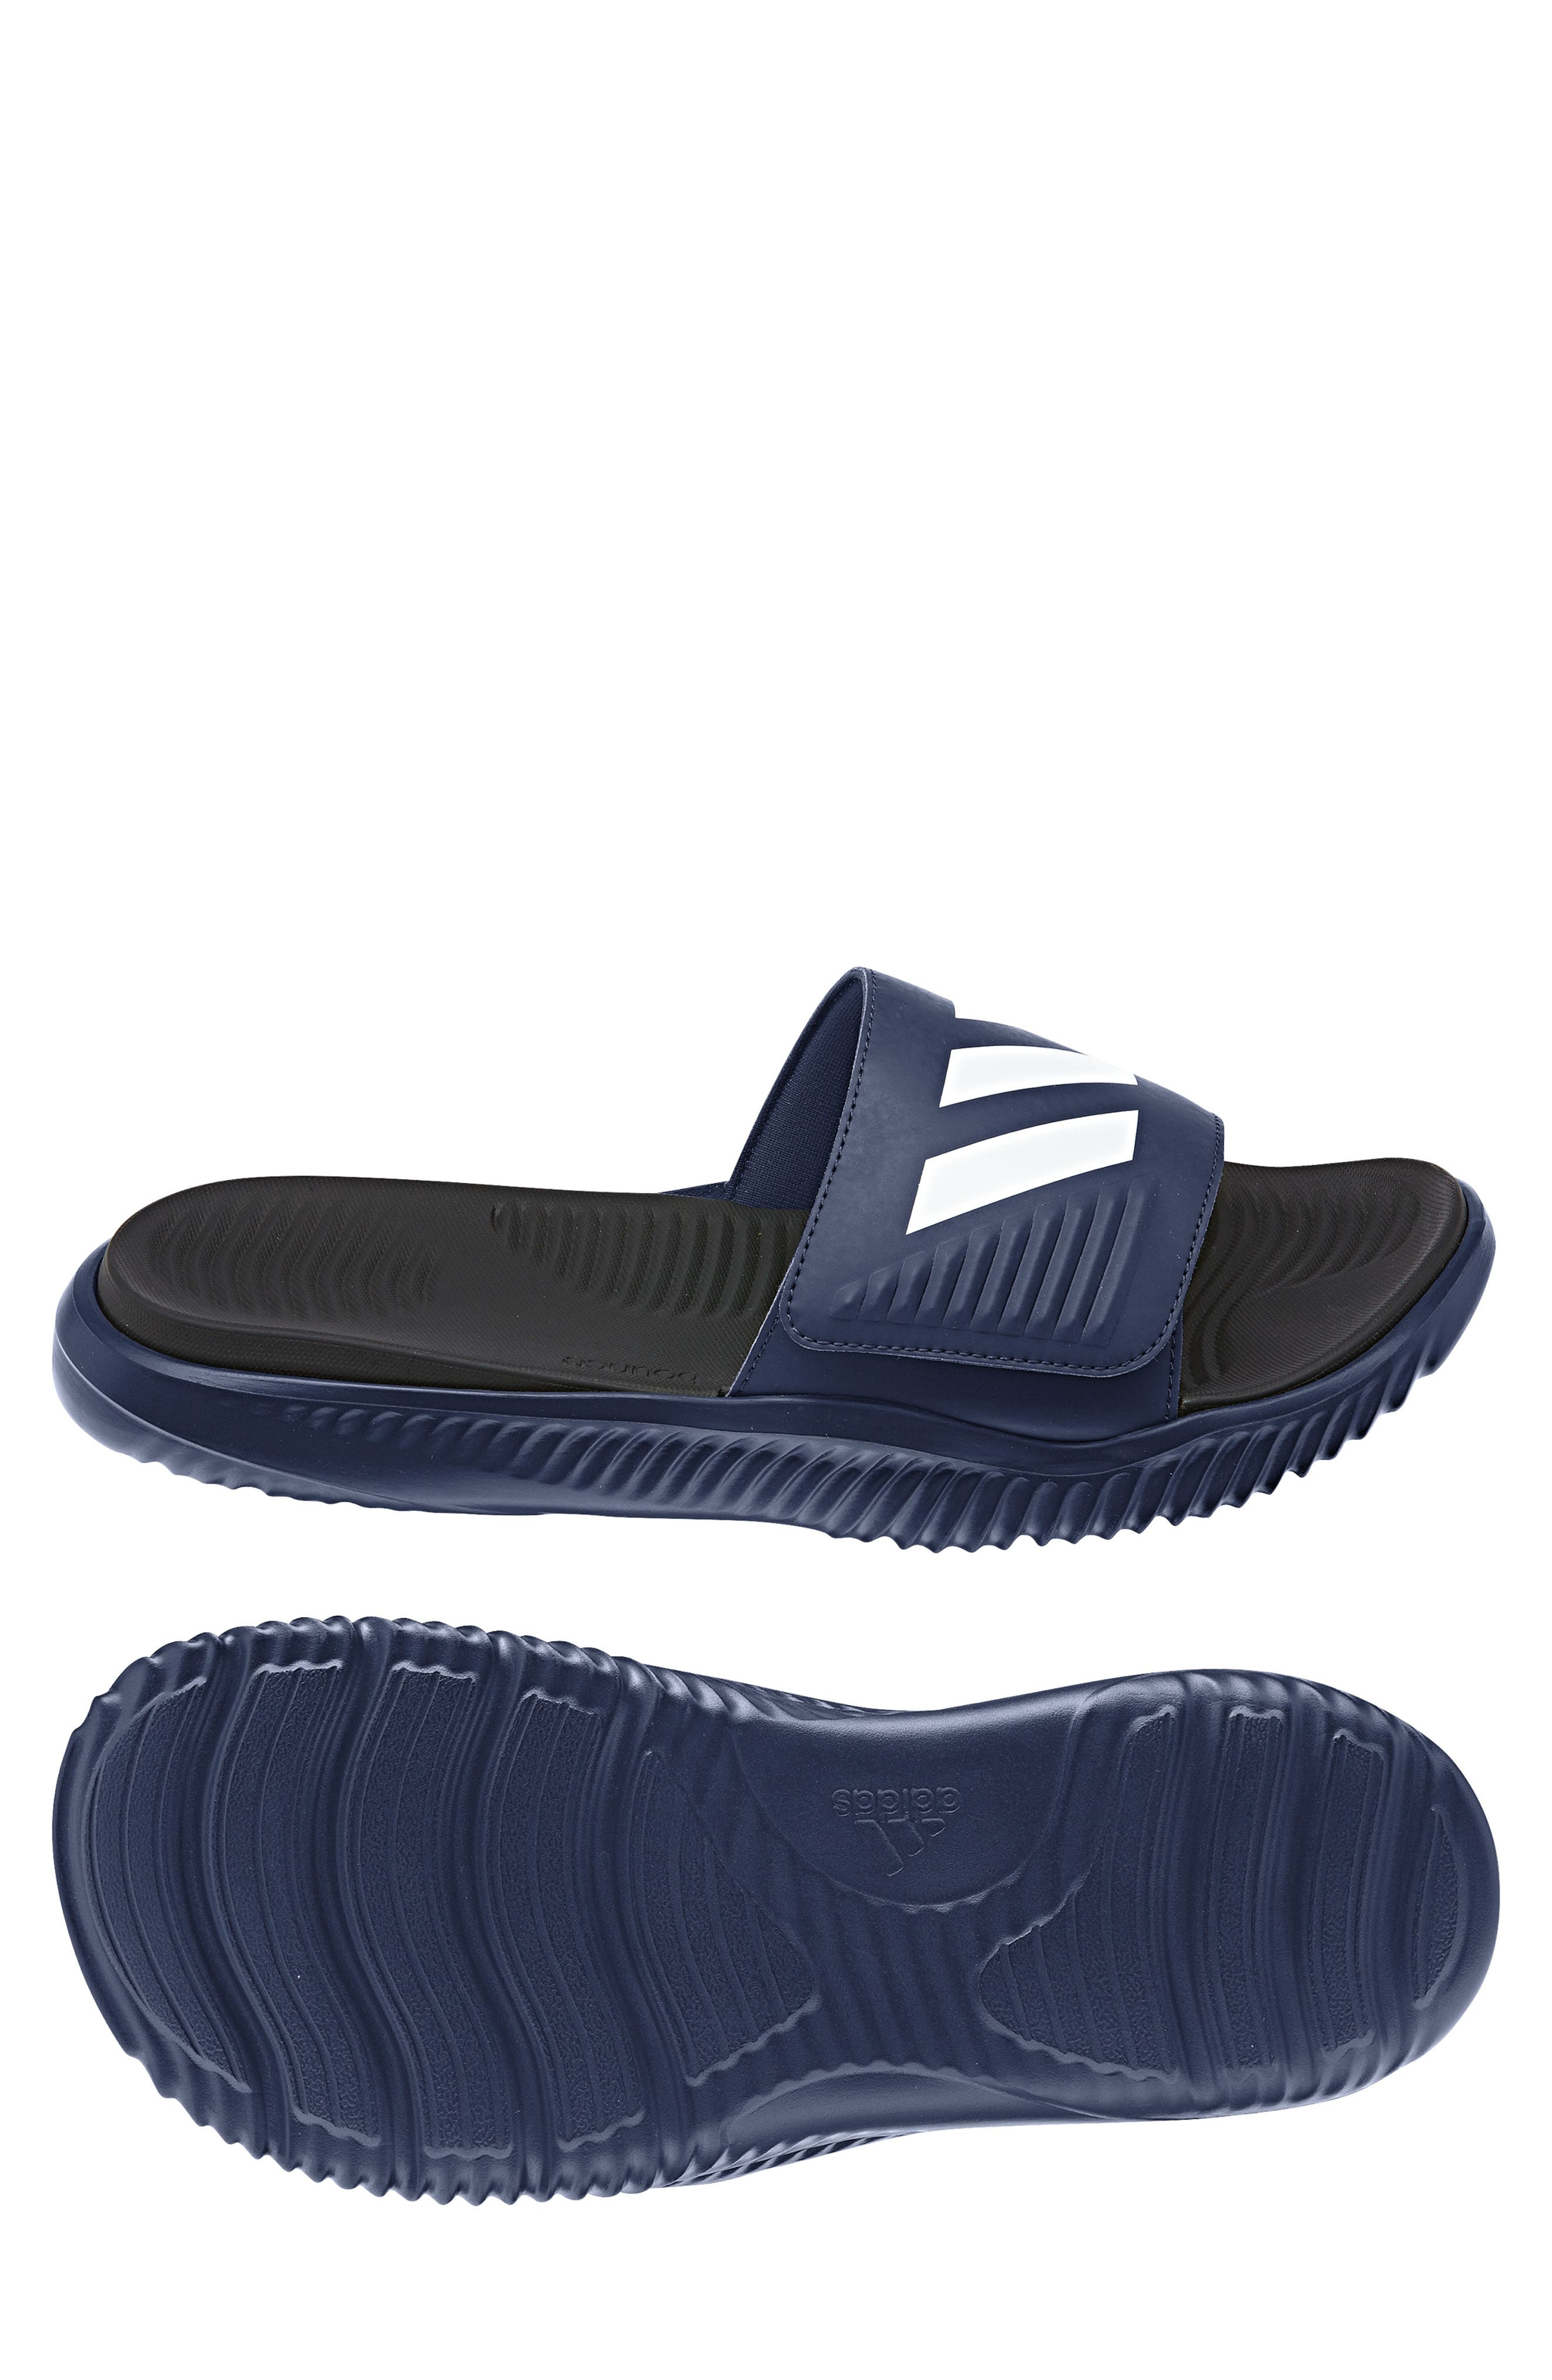 AlphaBounce Slide Sandal,                             Alternate thumbnail 4, color,                             415